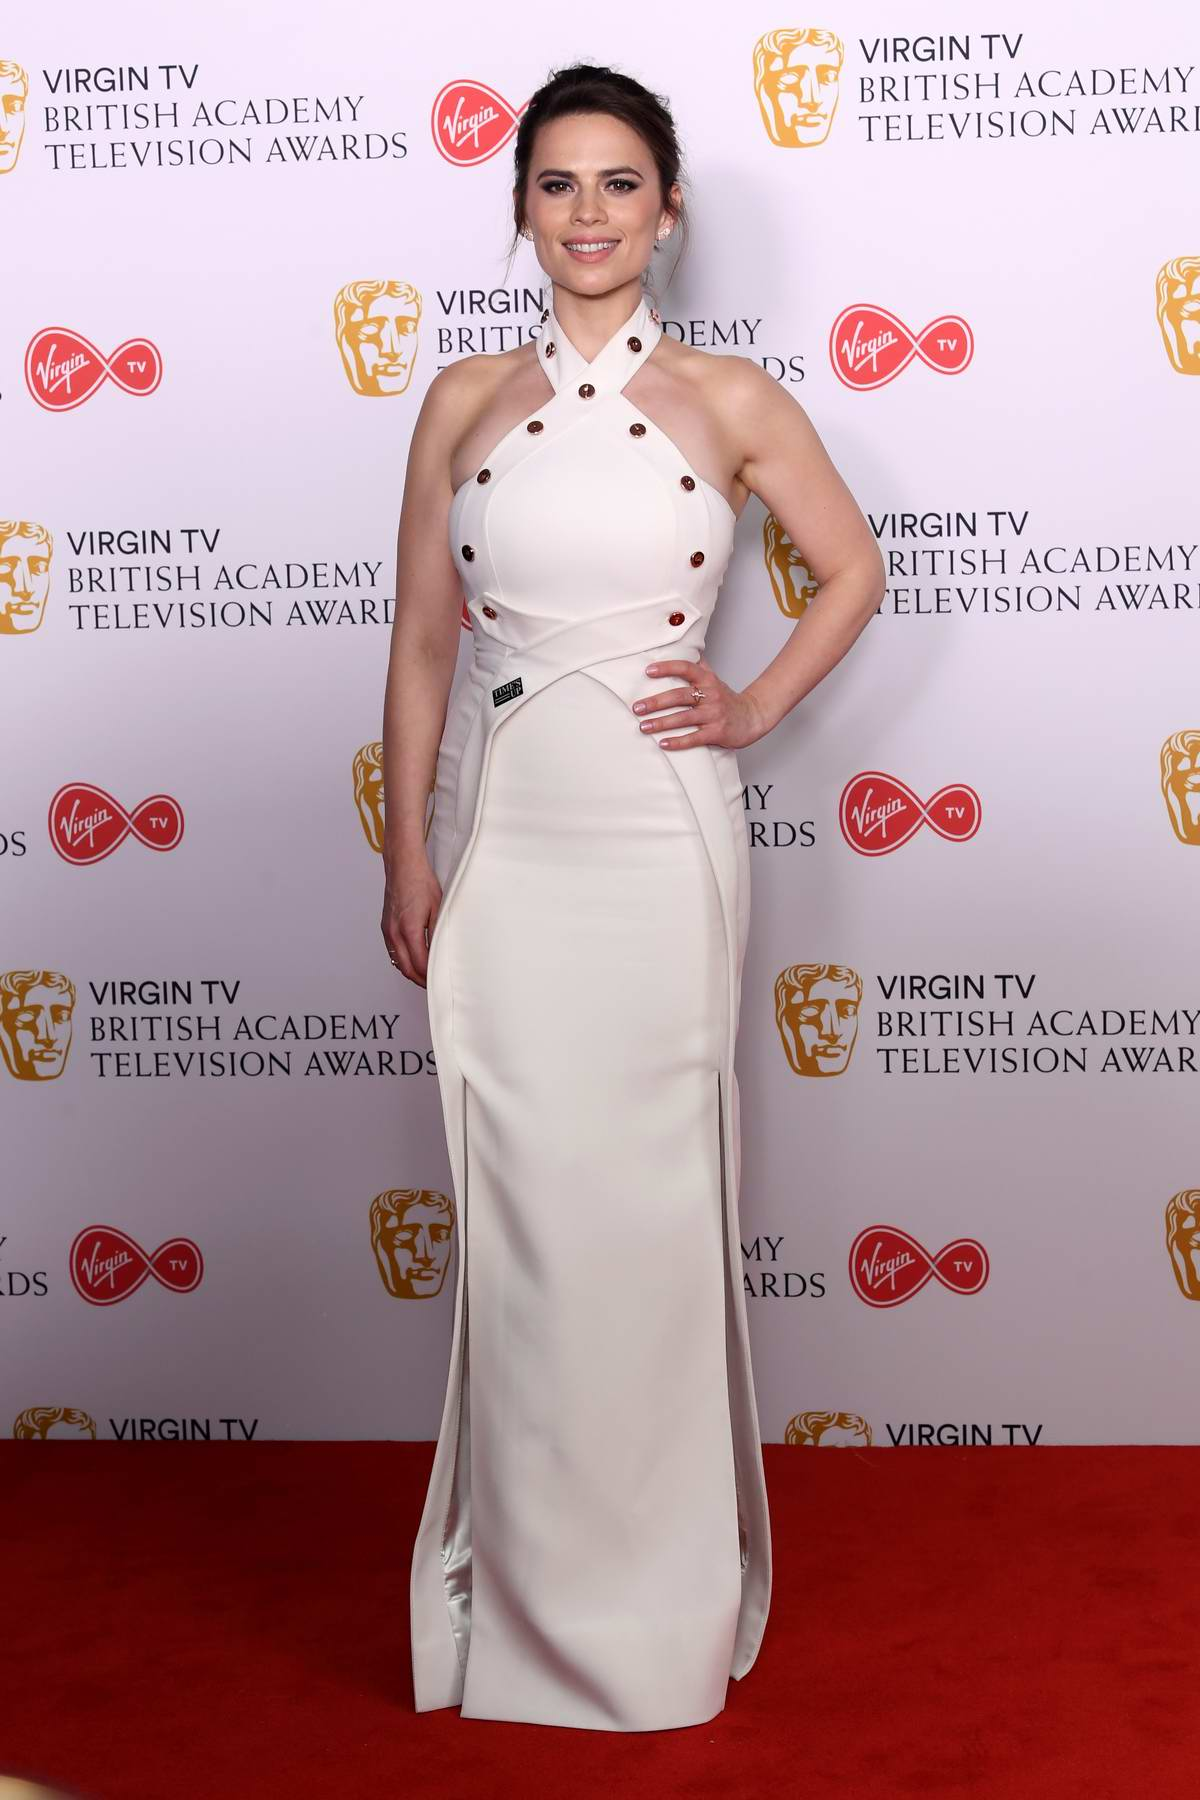 Hayley Atwell attends British Academy Television Awards (BAFTA 2018) at Royal Festival Hall in London, UK